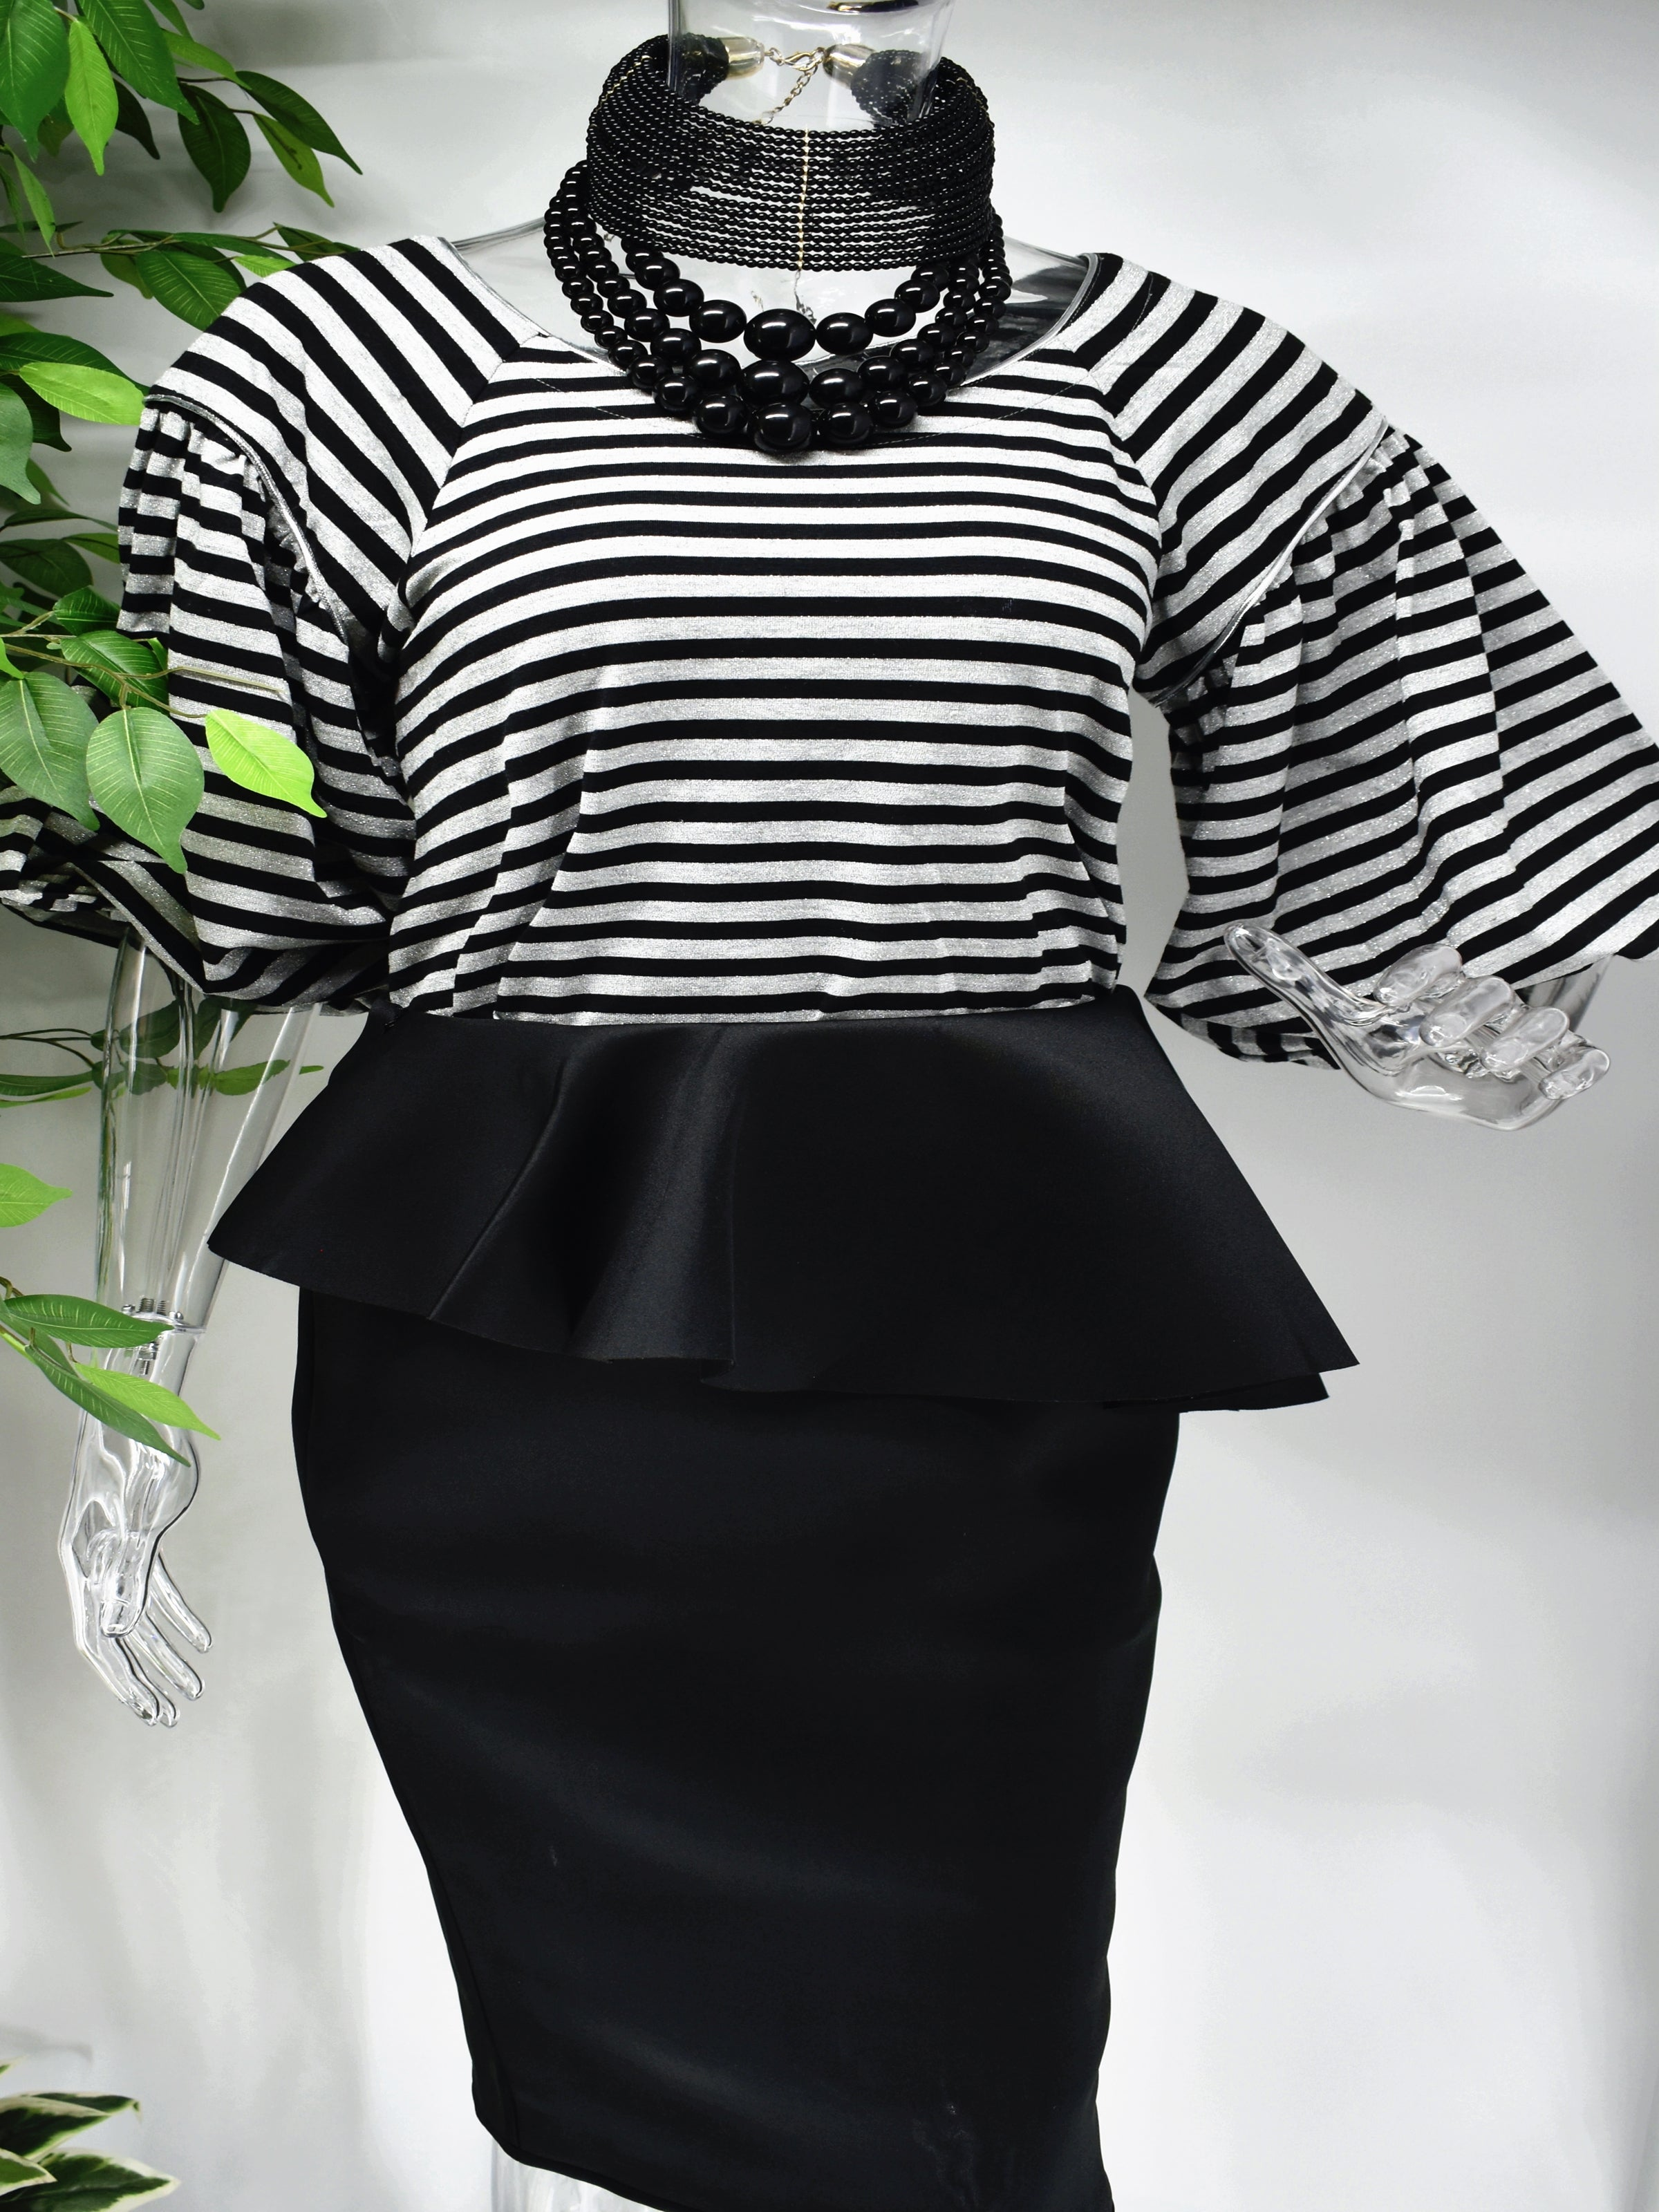 Bring a modern design to a classic staple when you step out in our Bobette stripe top. Bobette has a black and gray striped design with a bateau neckline that is beautifully paired with our high fashion puffed bell sleeve.